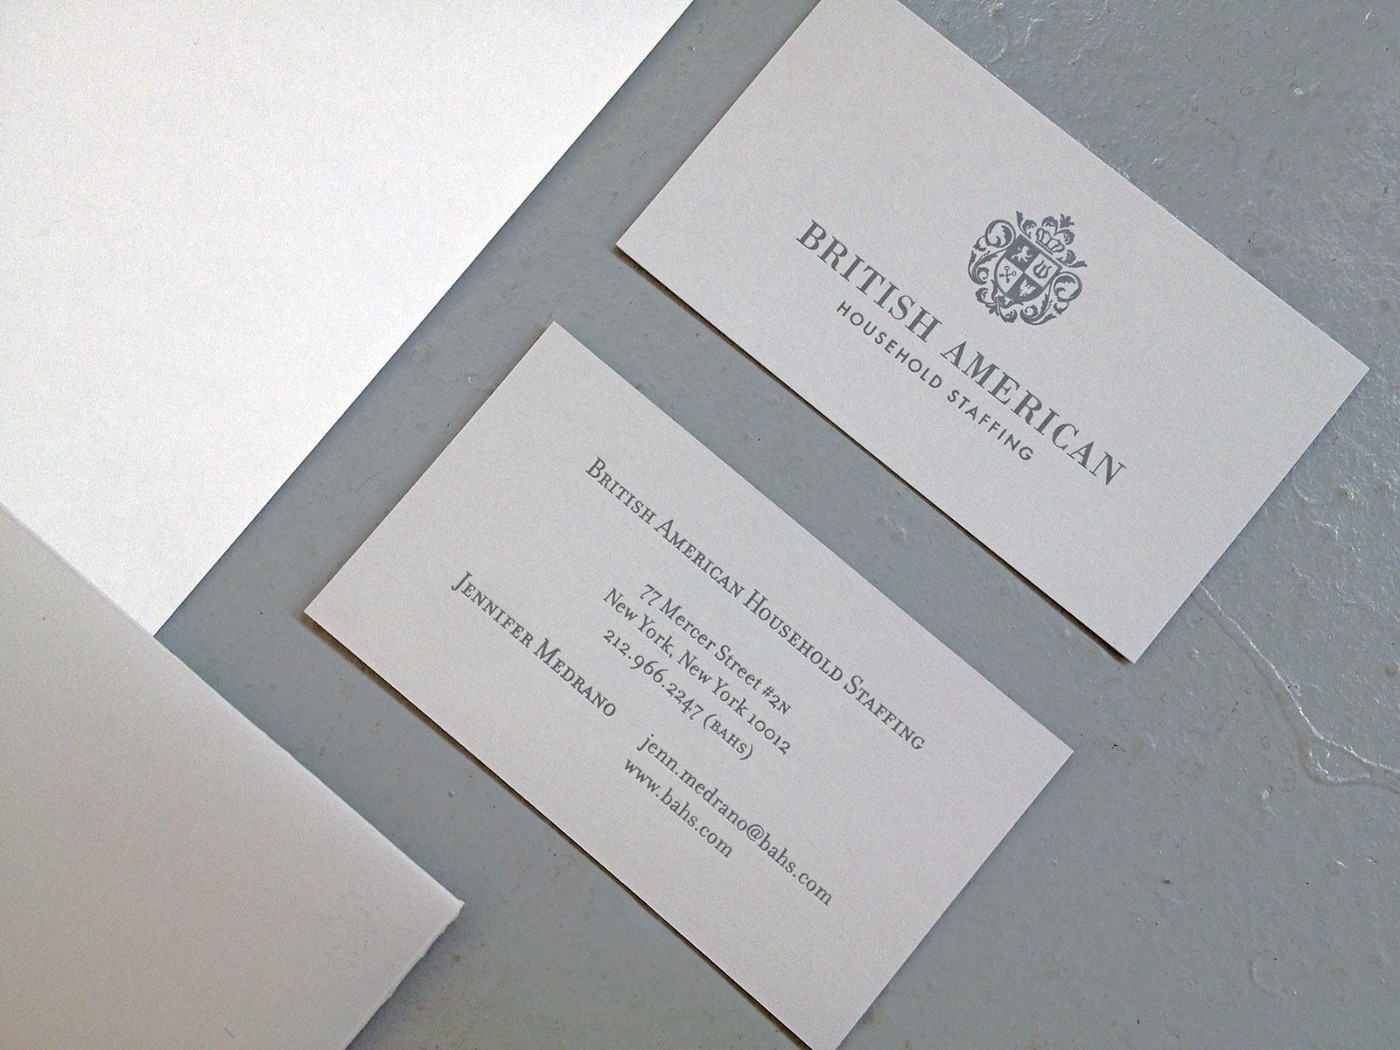 brittish american foiled stamped on neenah grey paper